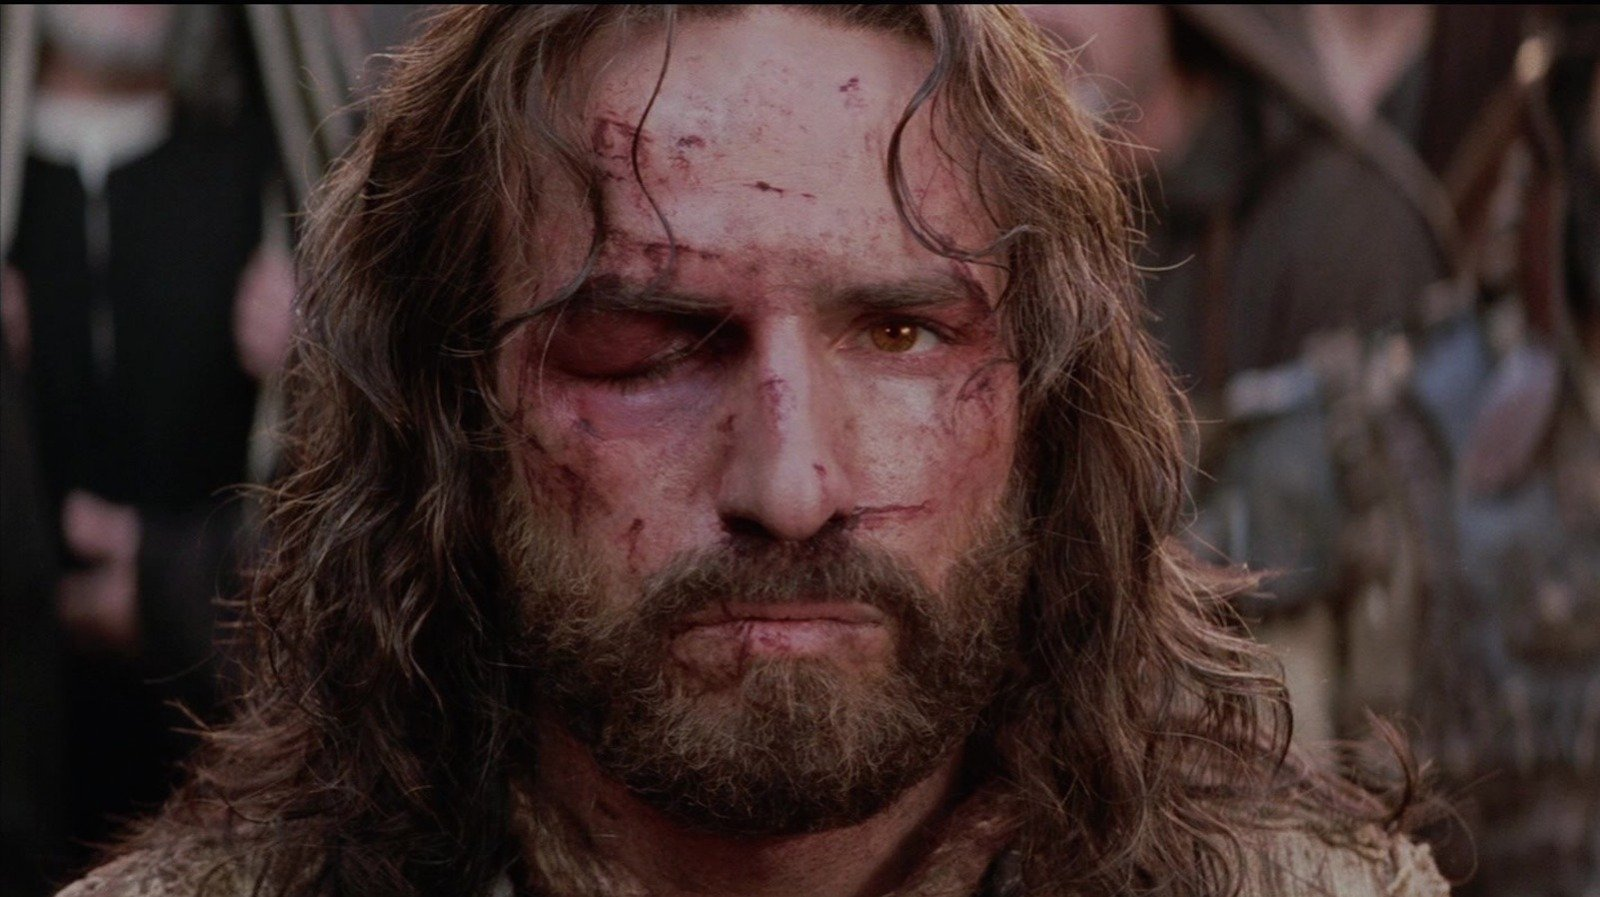 How Passion Of The Christ Ruined Jim Caviezel's Career